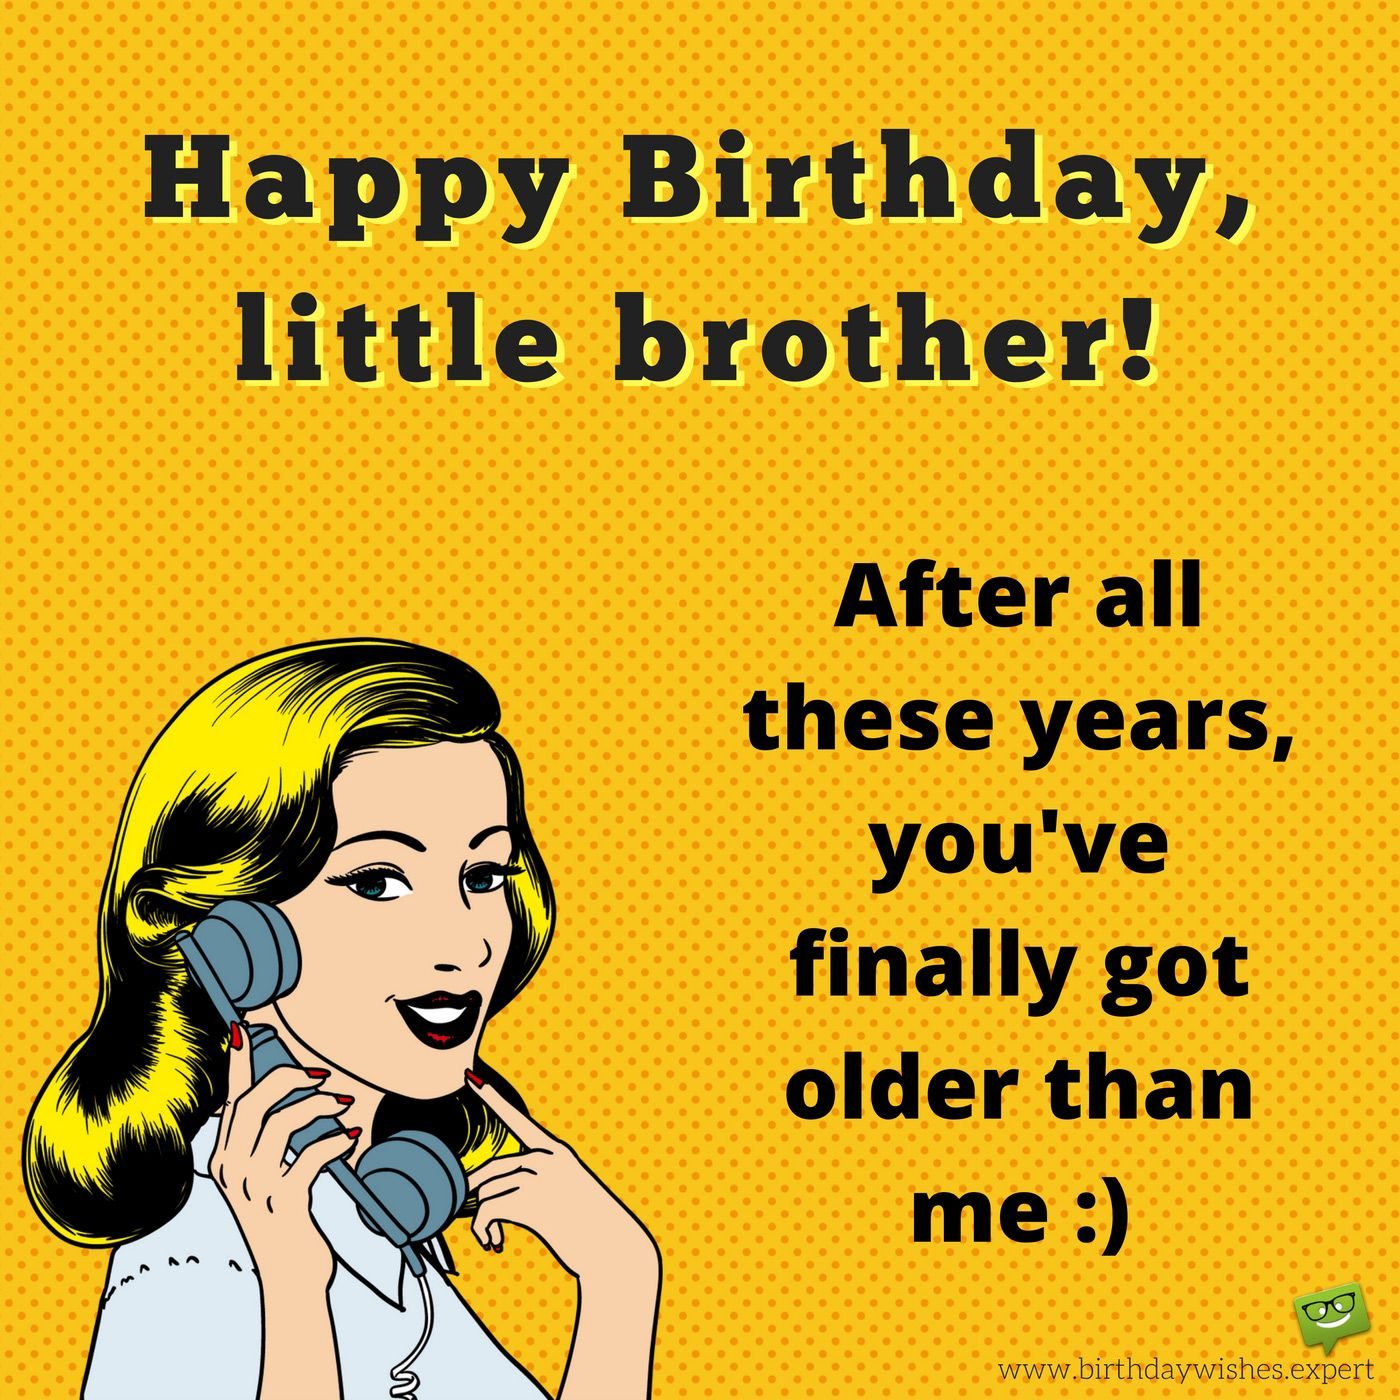 Sister Funny Quotes 2020 Other  Images Funny Birthday Wishes For Brother From Sister